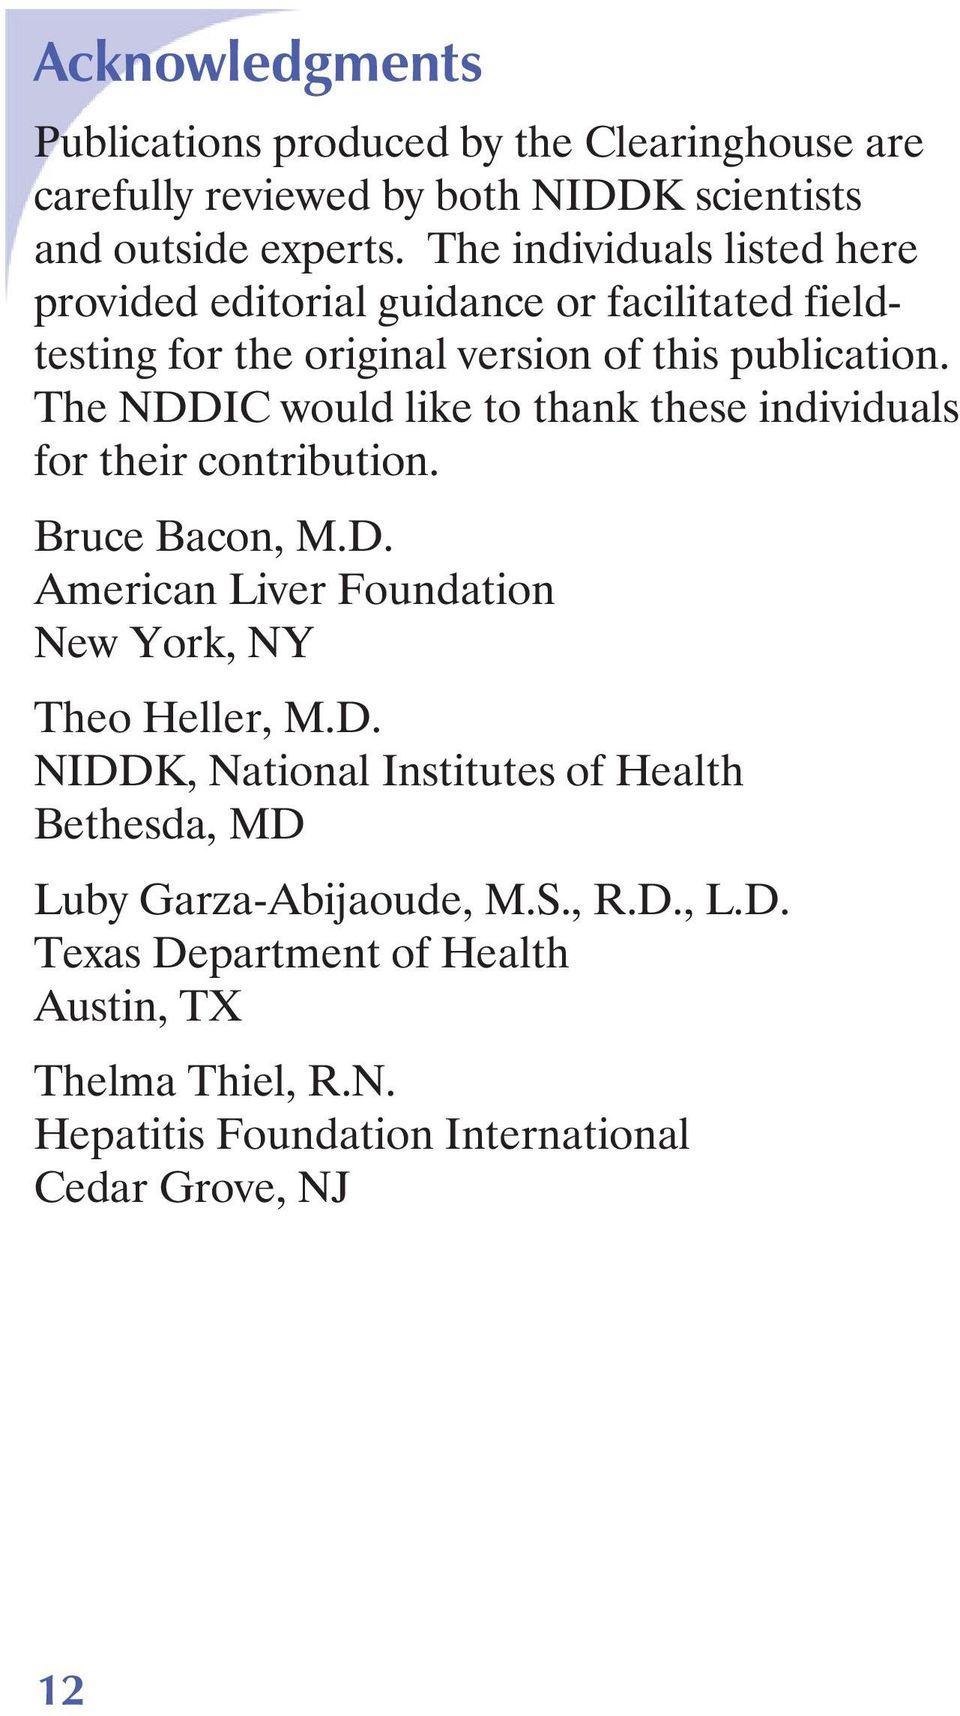 The NDDIC would like to thank these individuals for their contribution. Bruce Bacon, M.D. American Liver Foundation New York, NY Theo Heller, M.D. NIDDK, National Institutes of Health Bethesda, MD Luby Garza-Abijaoude, M.